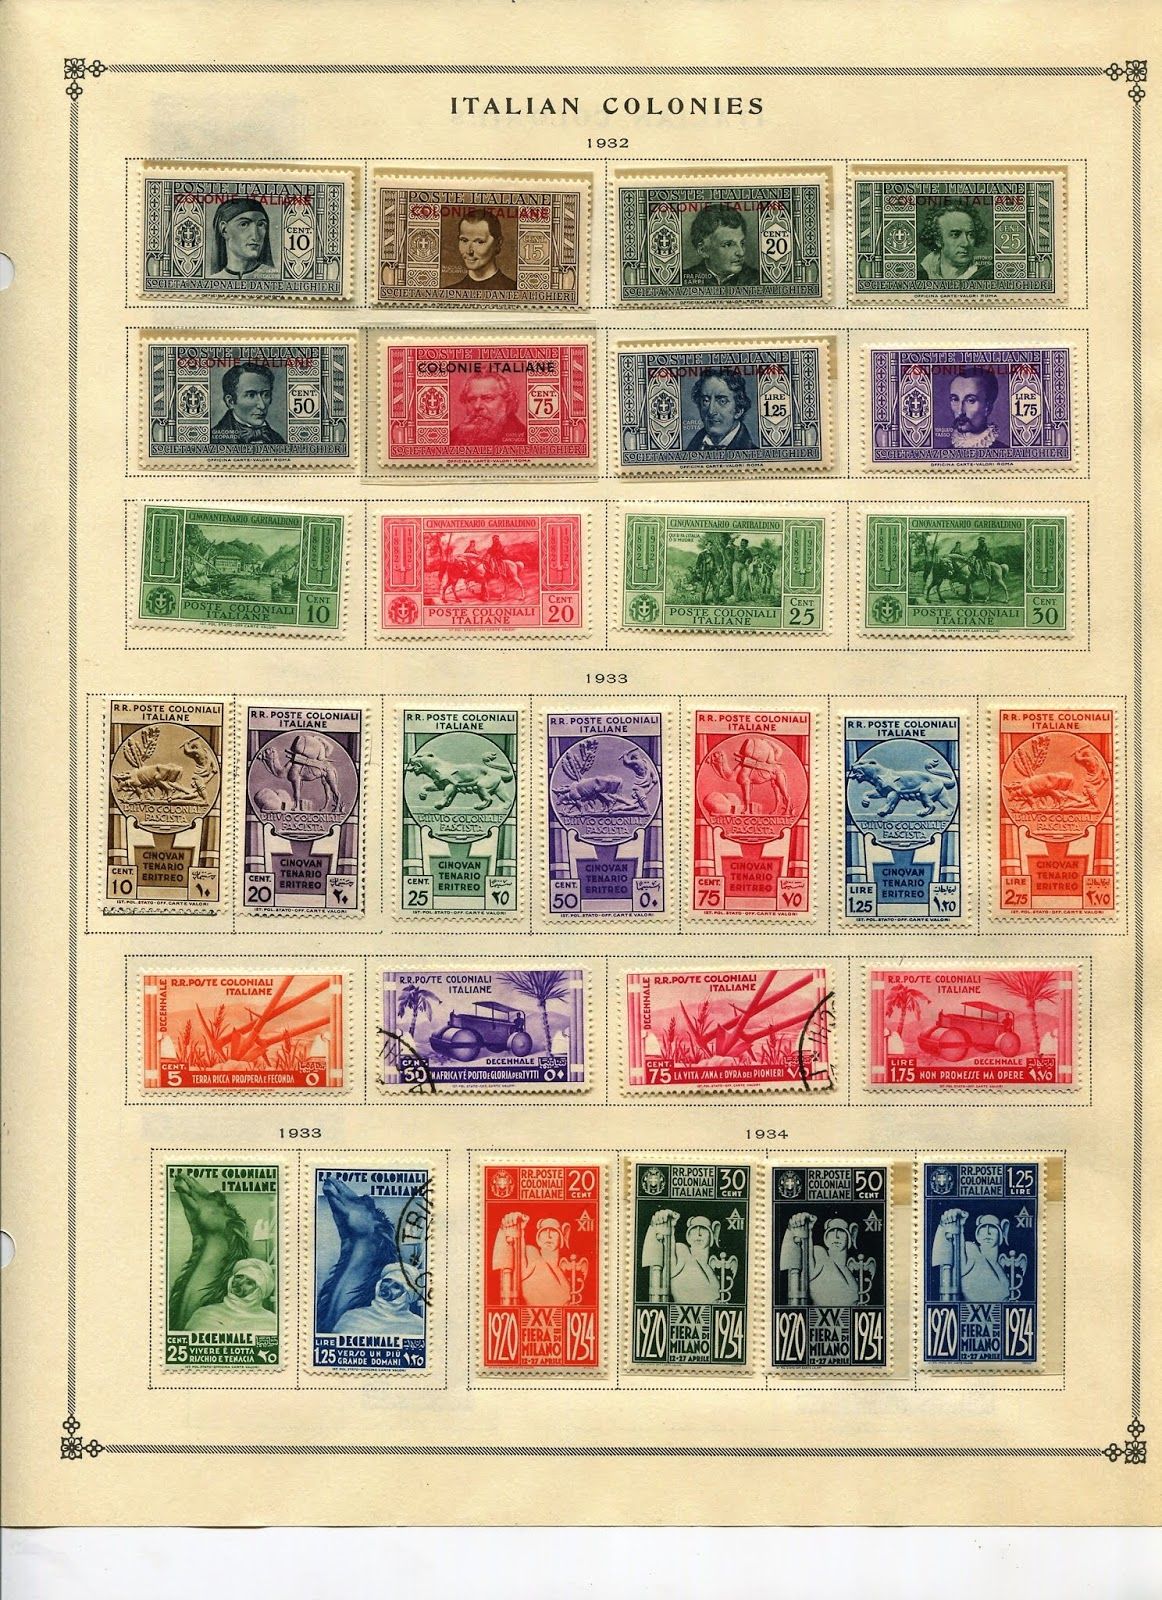 Stamps British Colonies & Territories 1 Mint Ambitious 3 Barbados 1d Postage Stamps